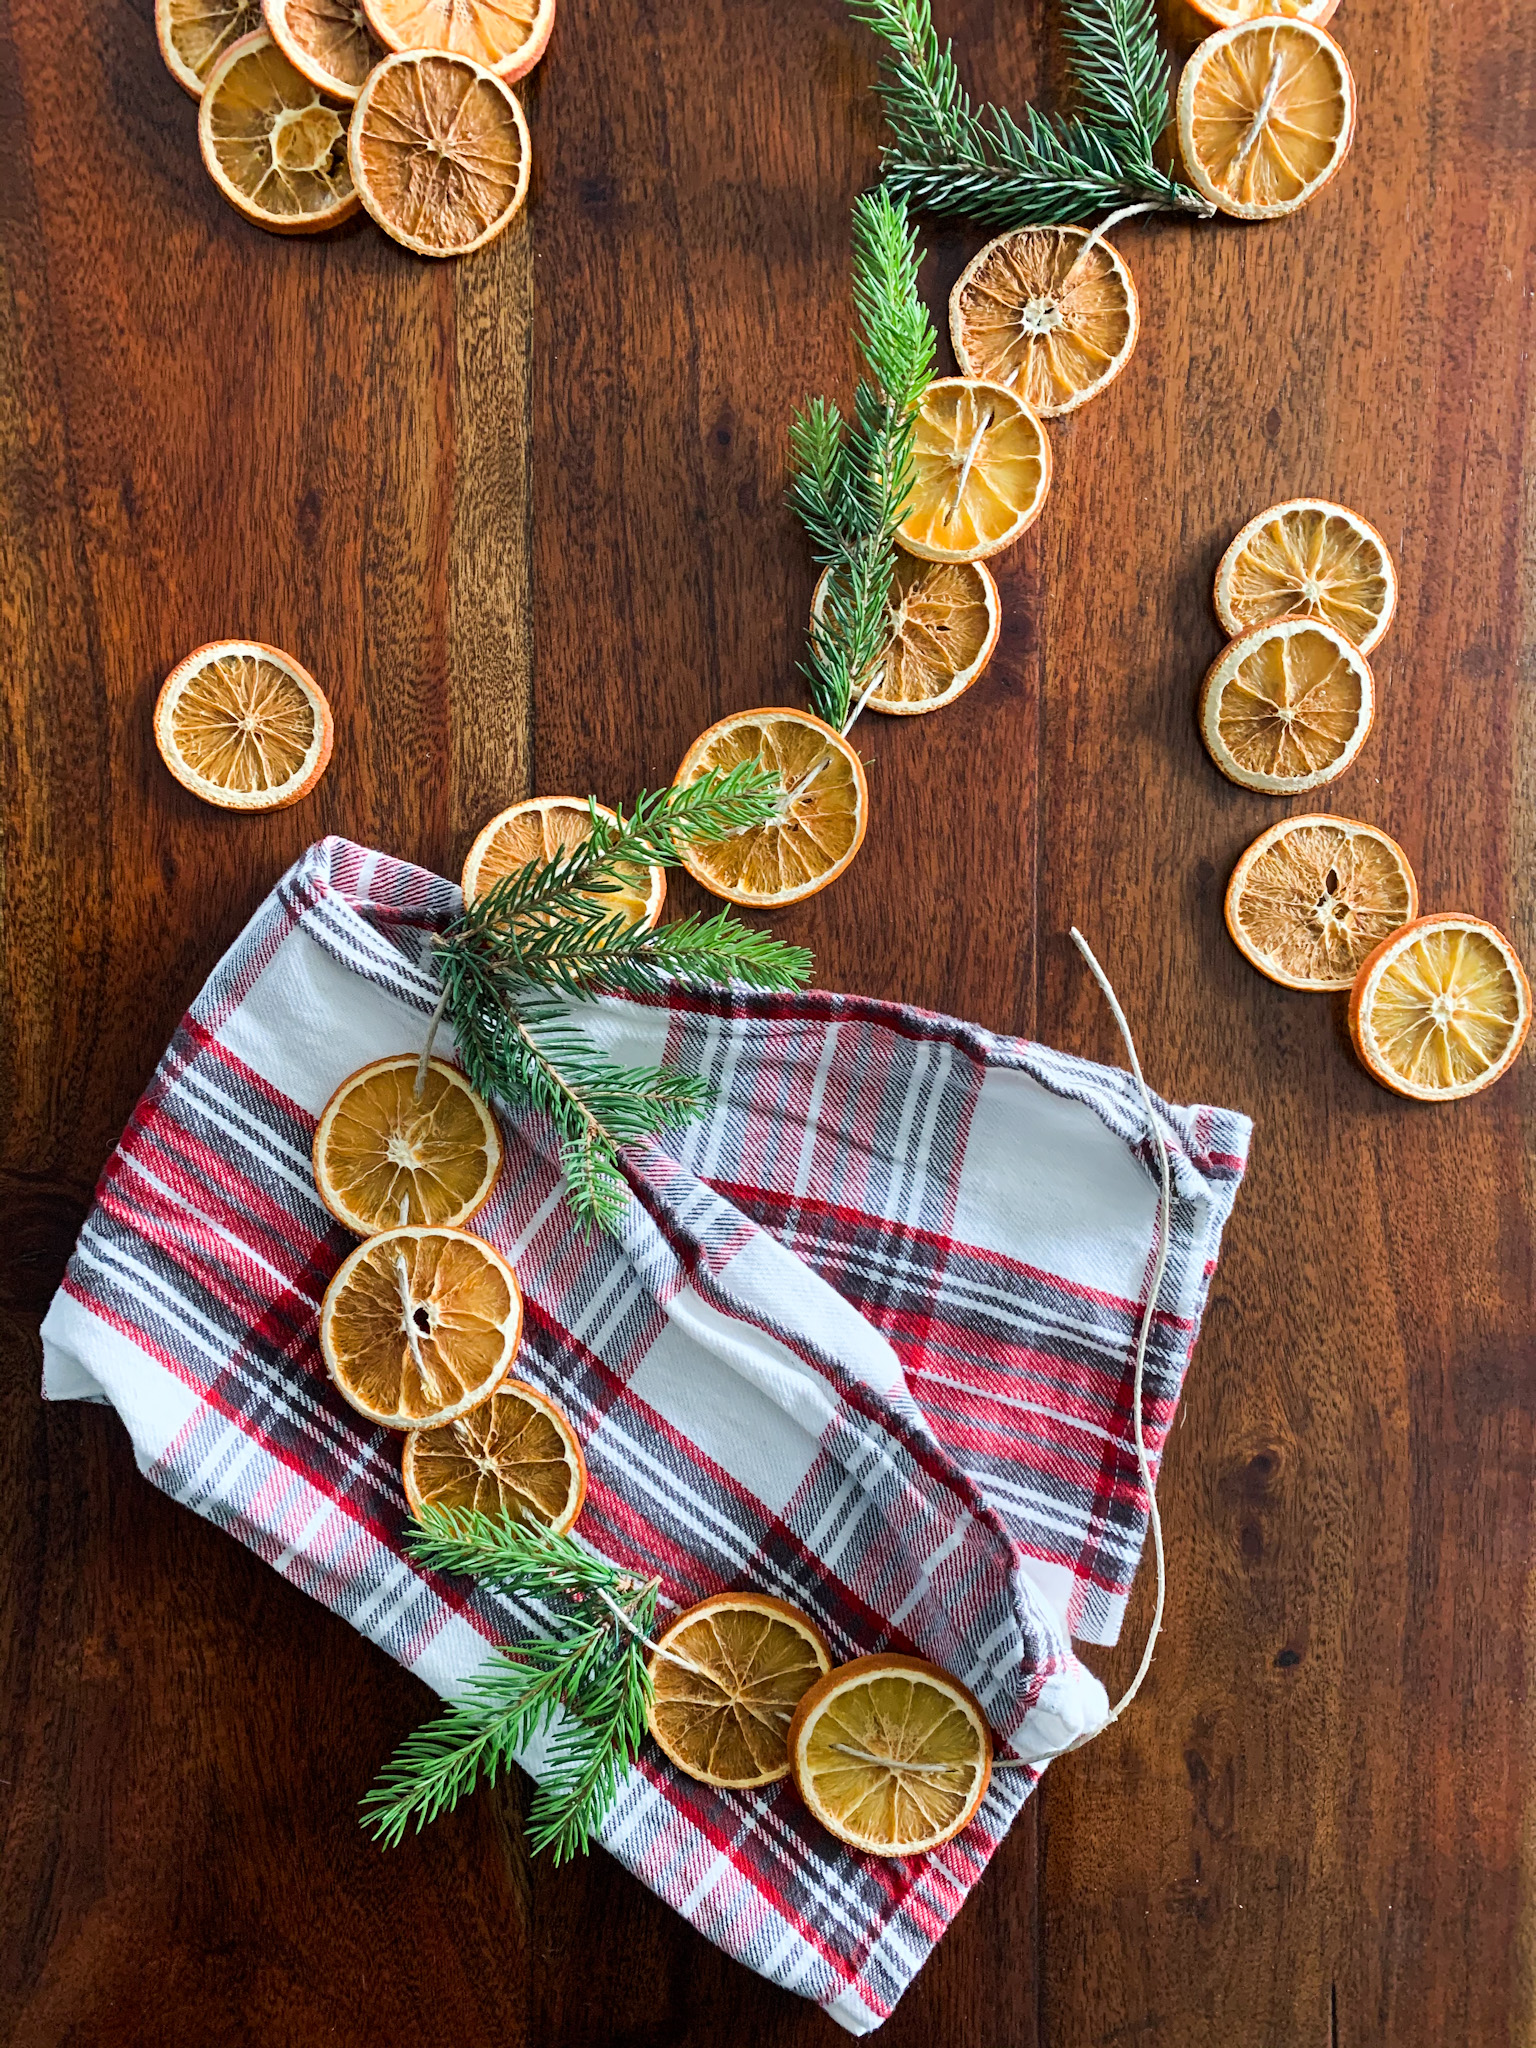 dried orange garland with pine on the table and a plaid towel